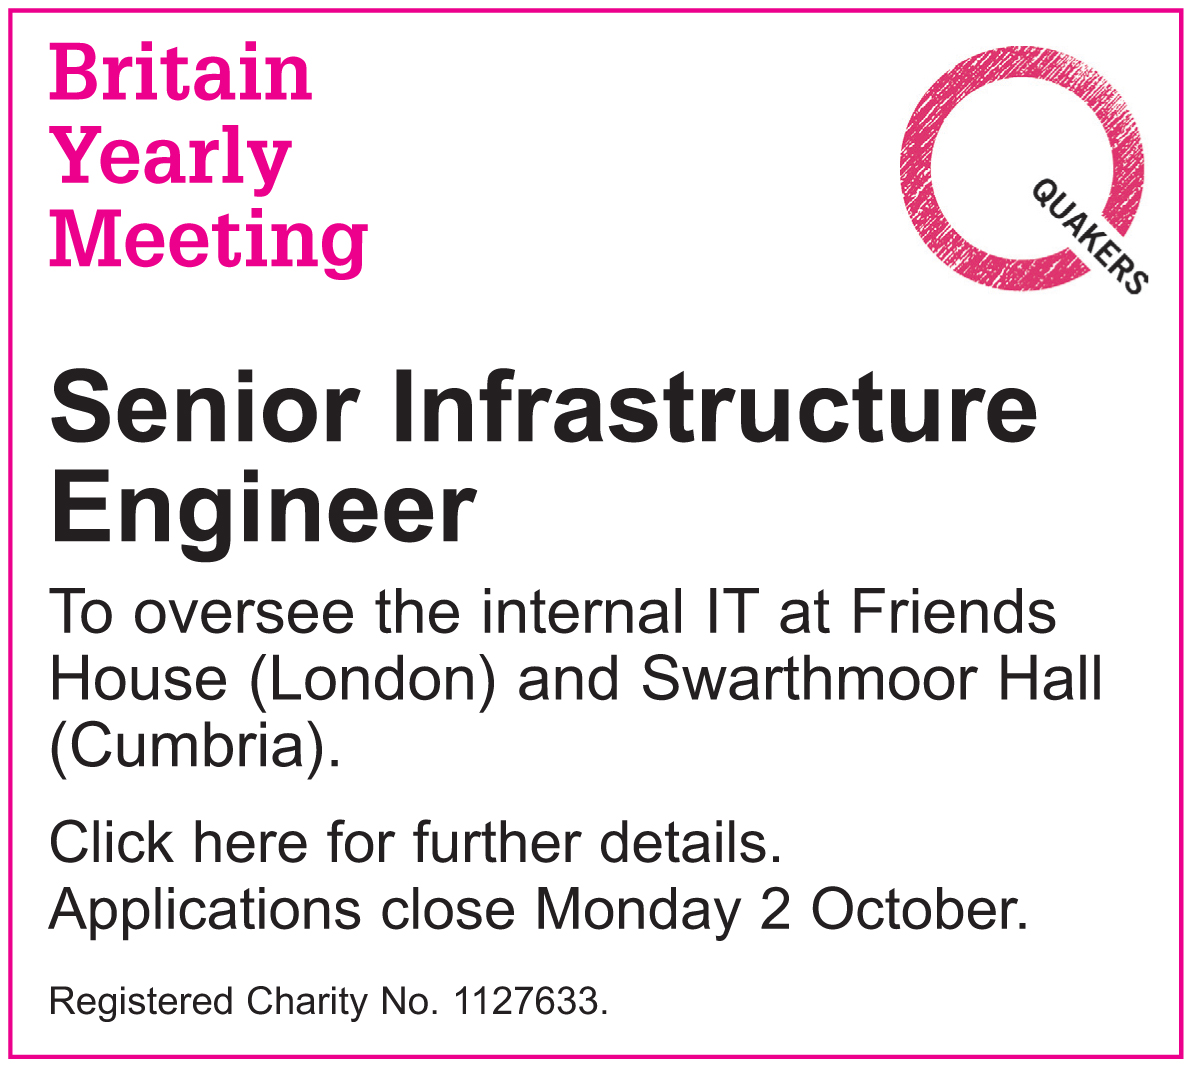 Senior Infrastructure Engineer